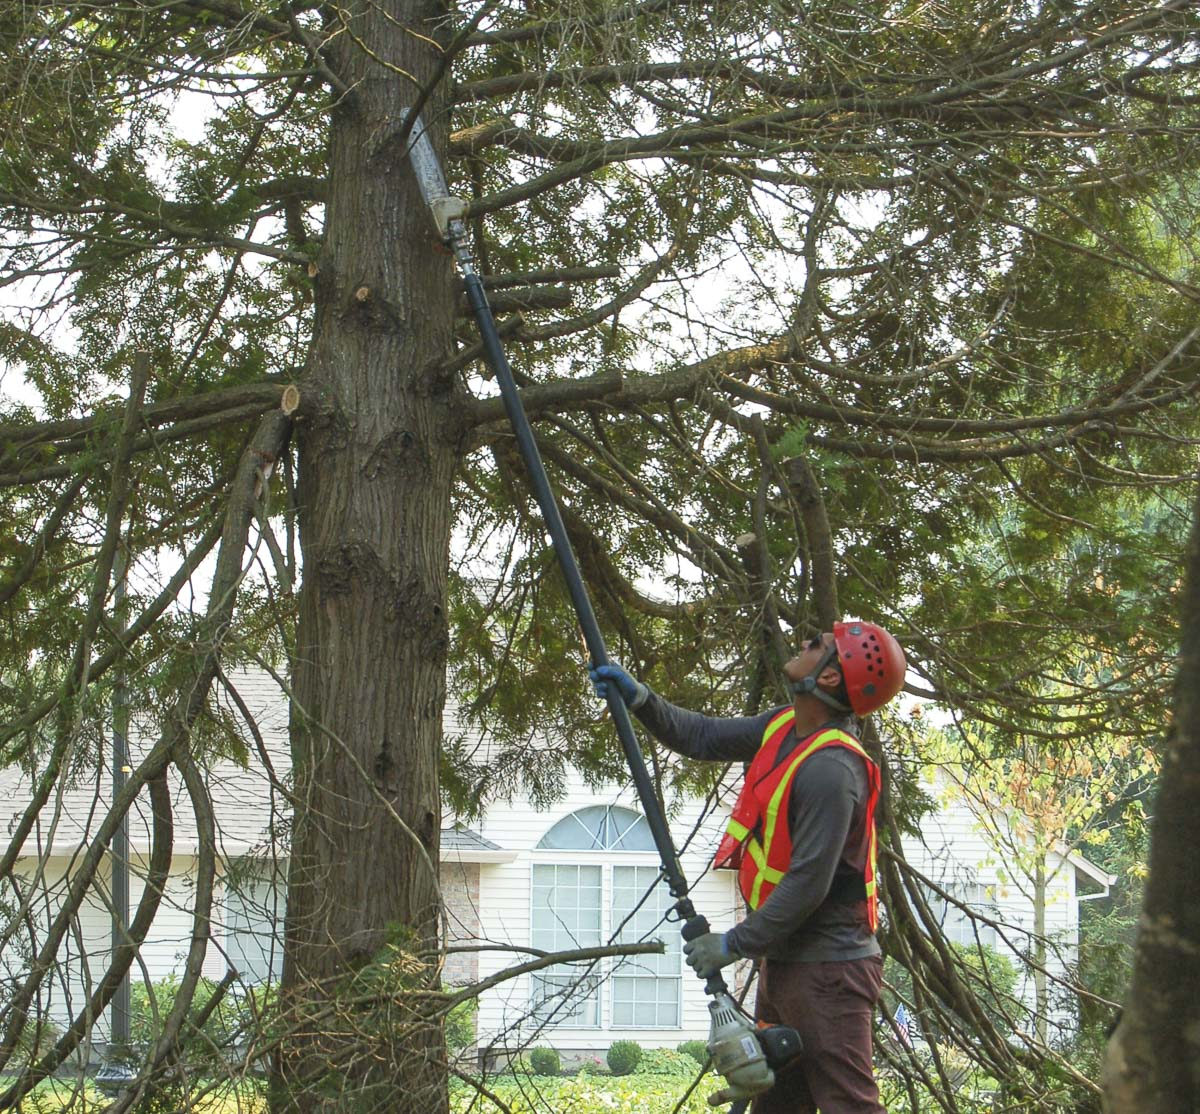 Proper pruning by certified arborists promotes healthy trees. Photo courtesy of city of Vancouver